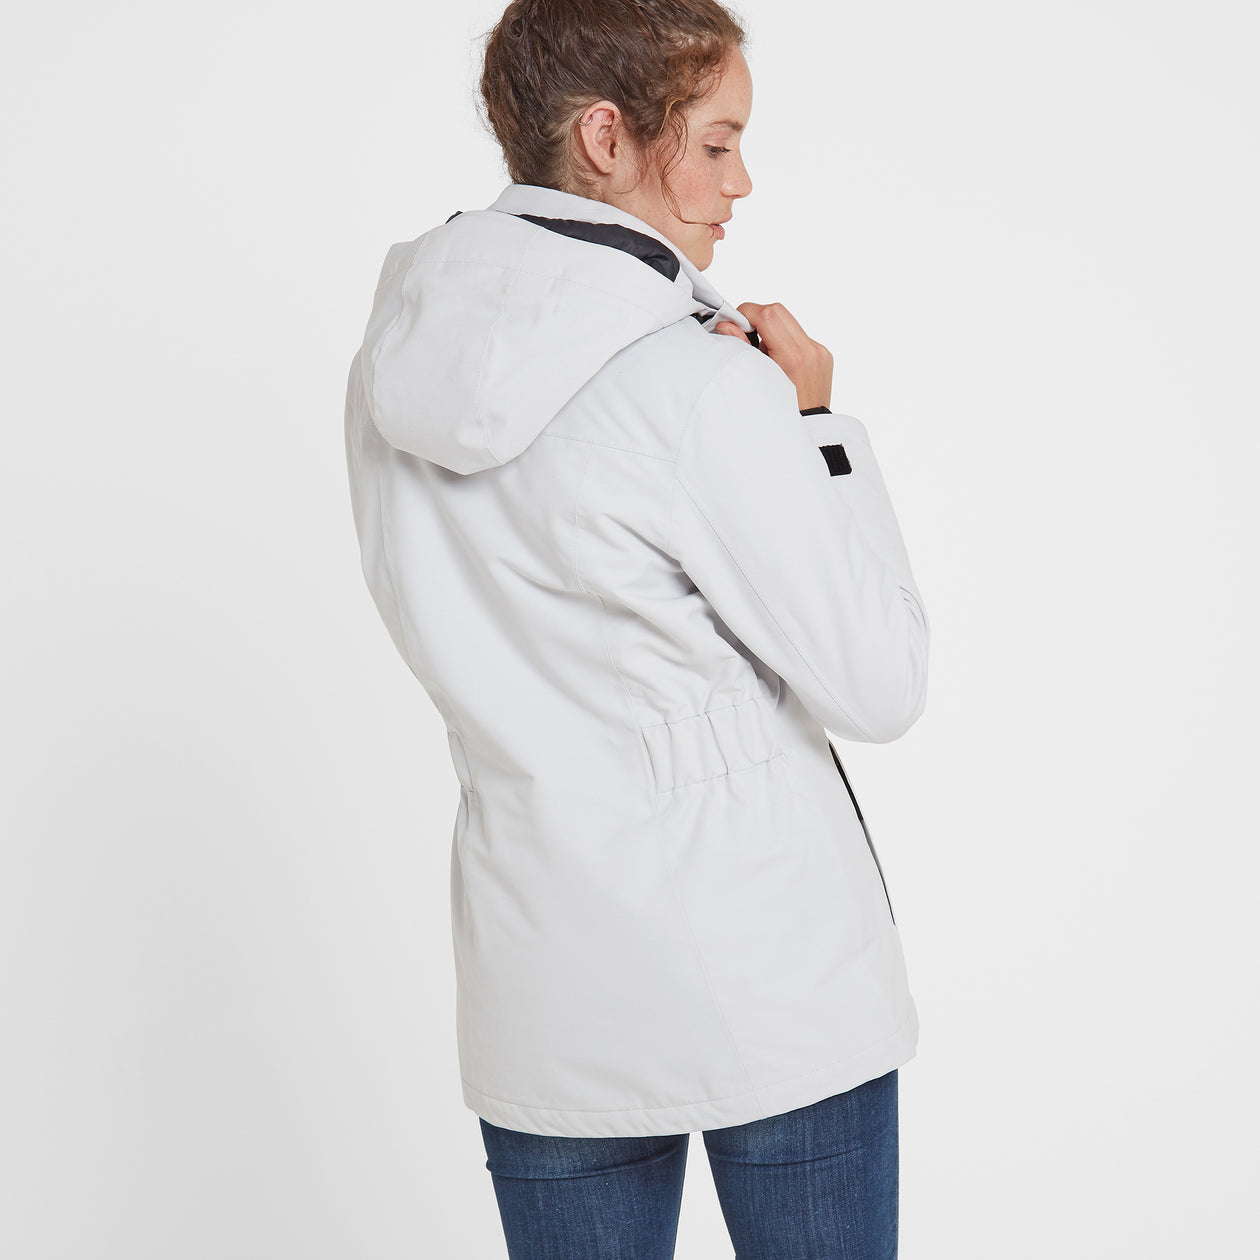 Cawood Womens Winter Jacket - Ice Grey image 4